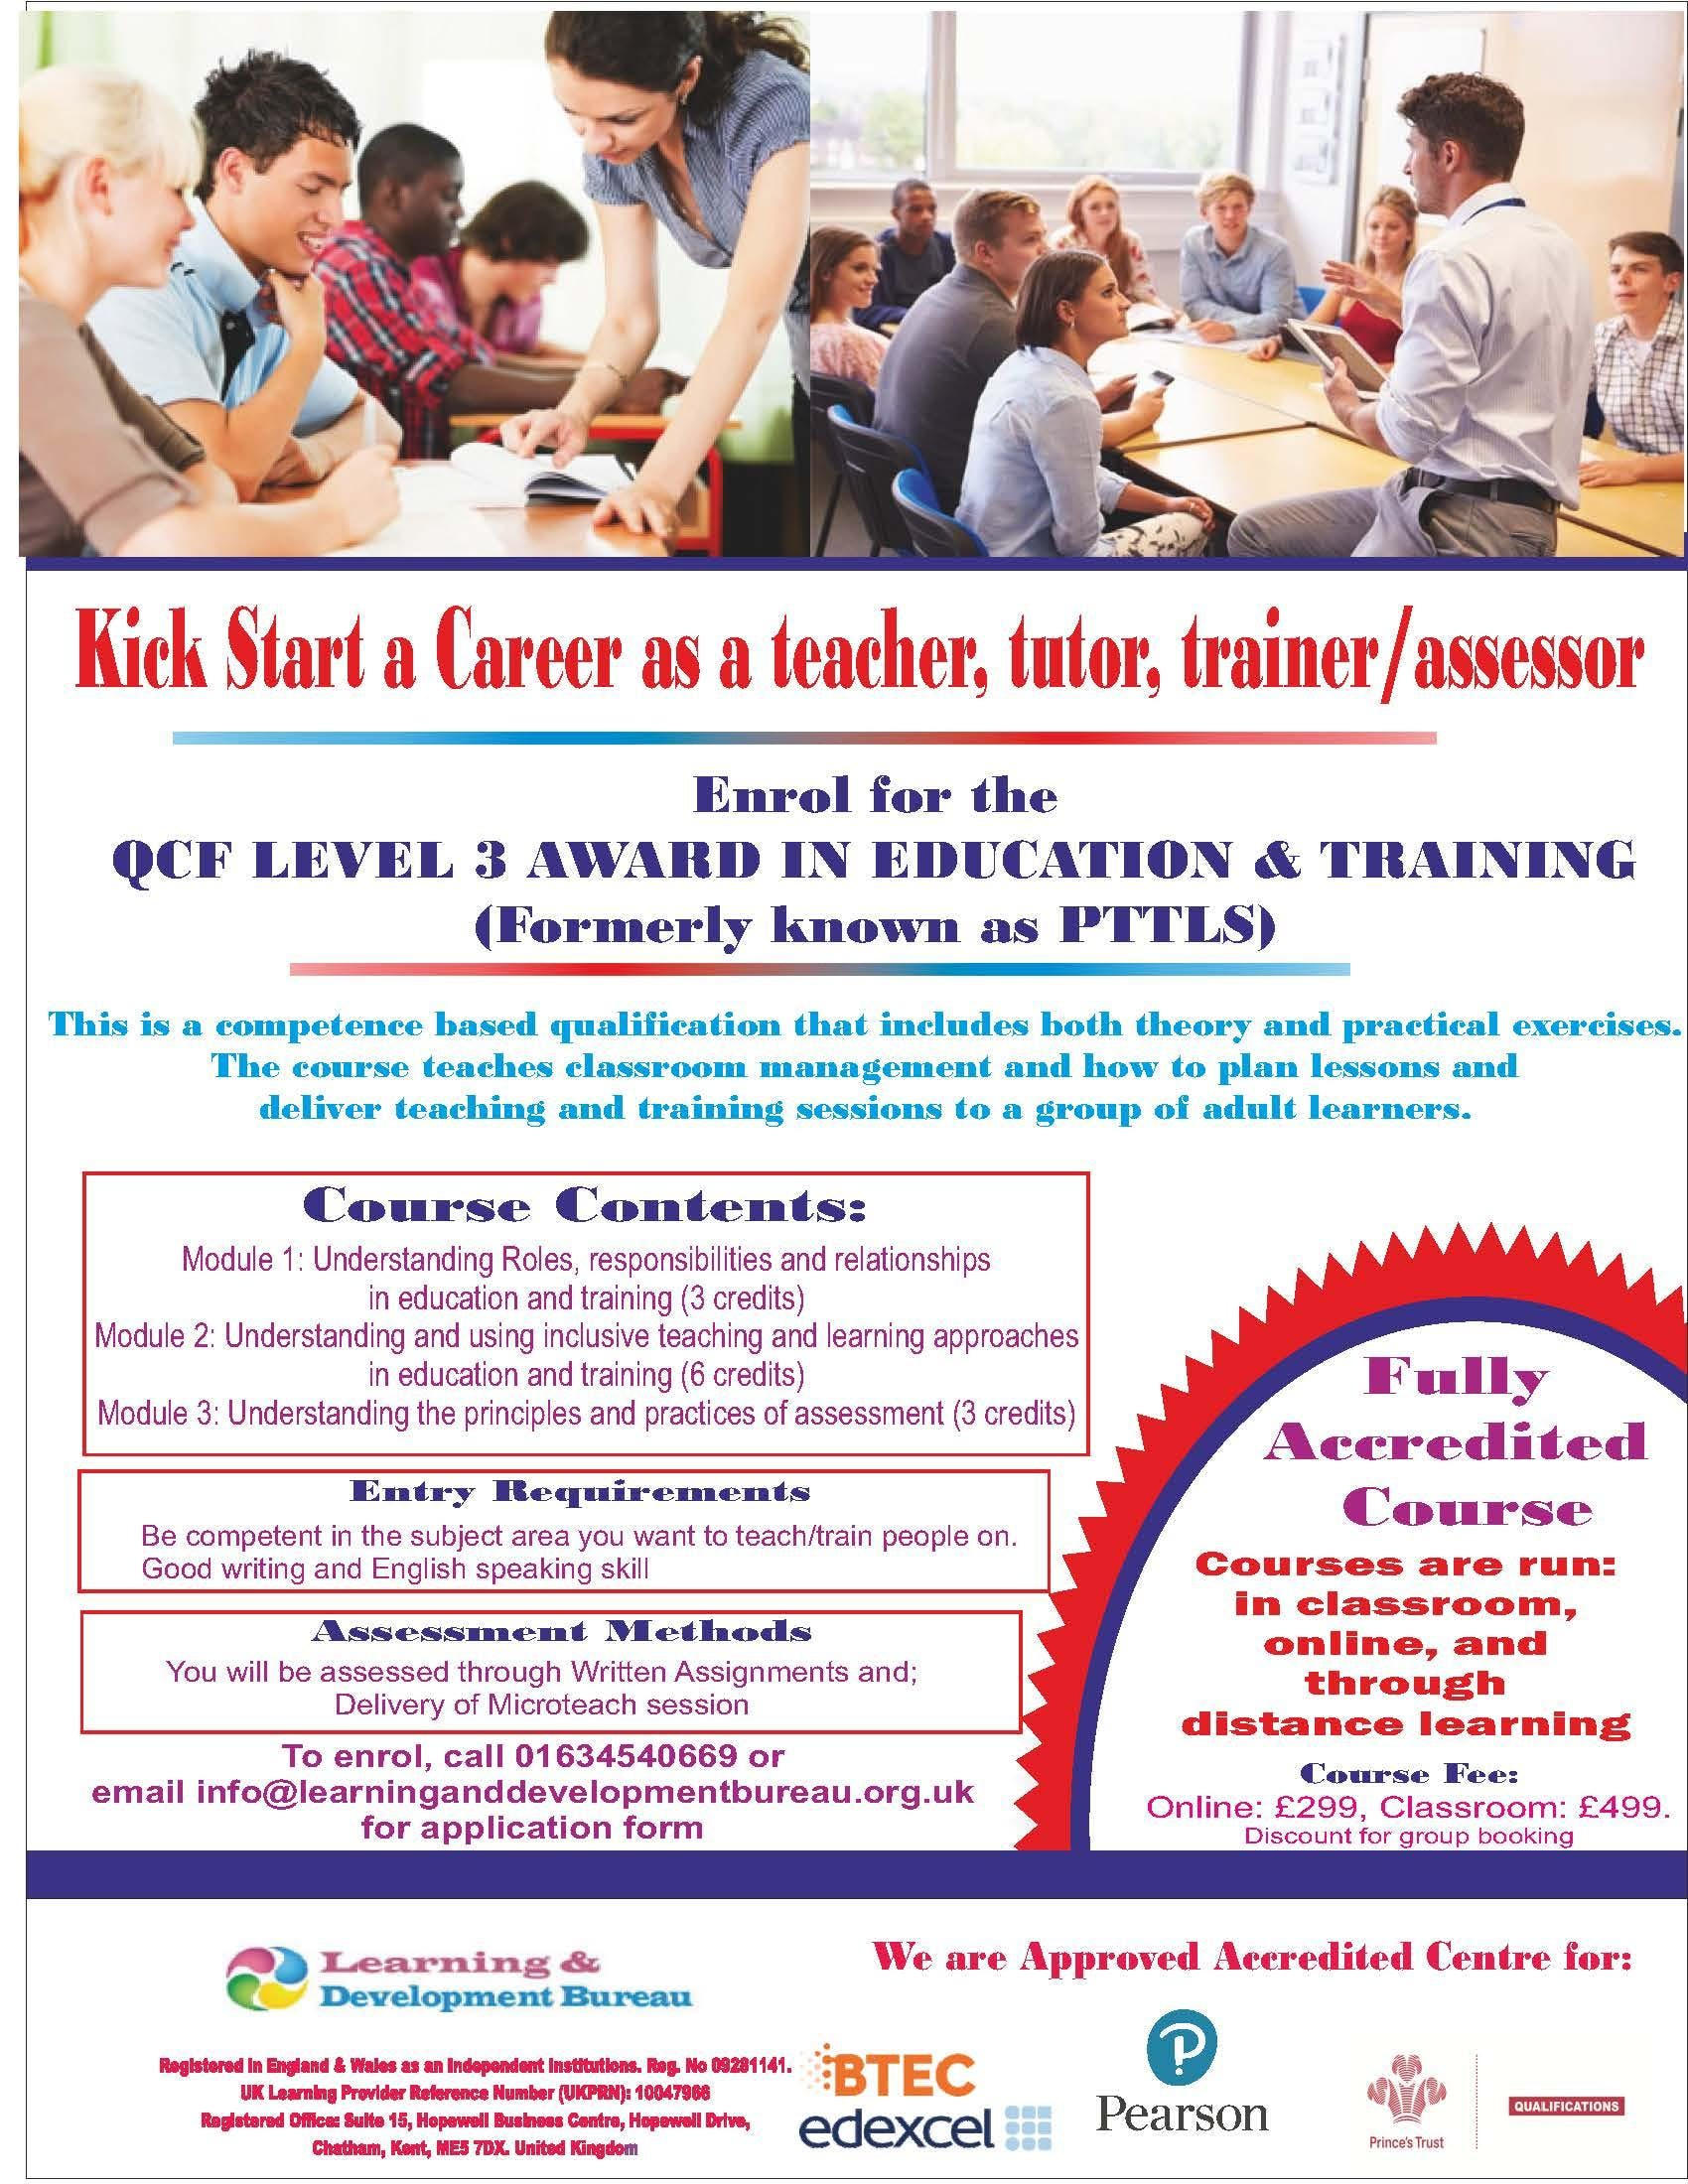 3 DAY FAST TRACK PTLLS COURSE-  LEVEL 3 AWARD